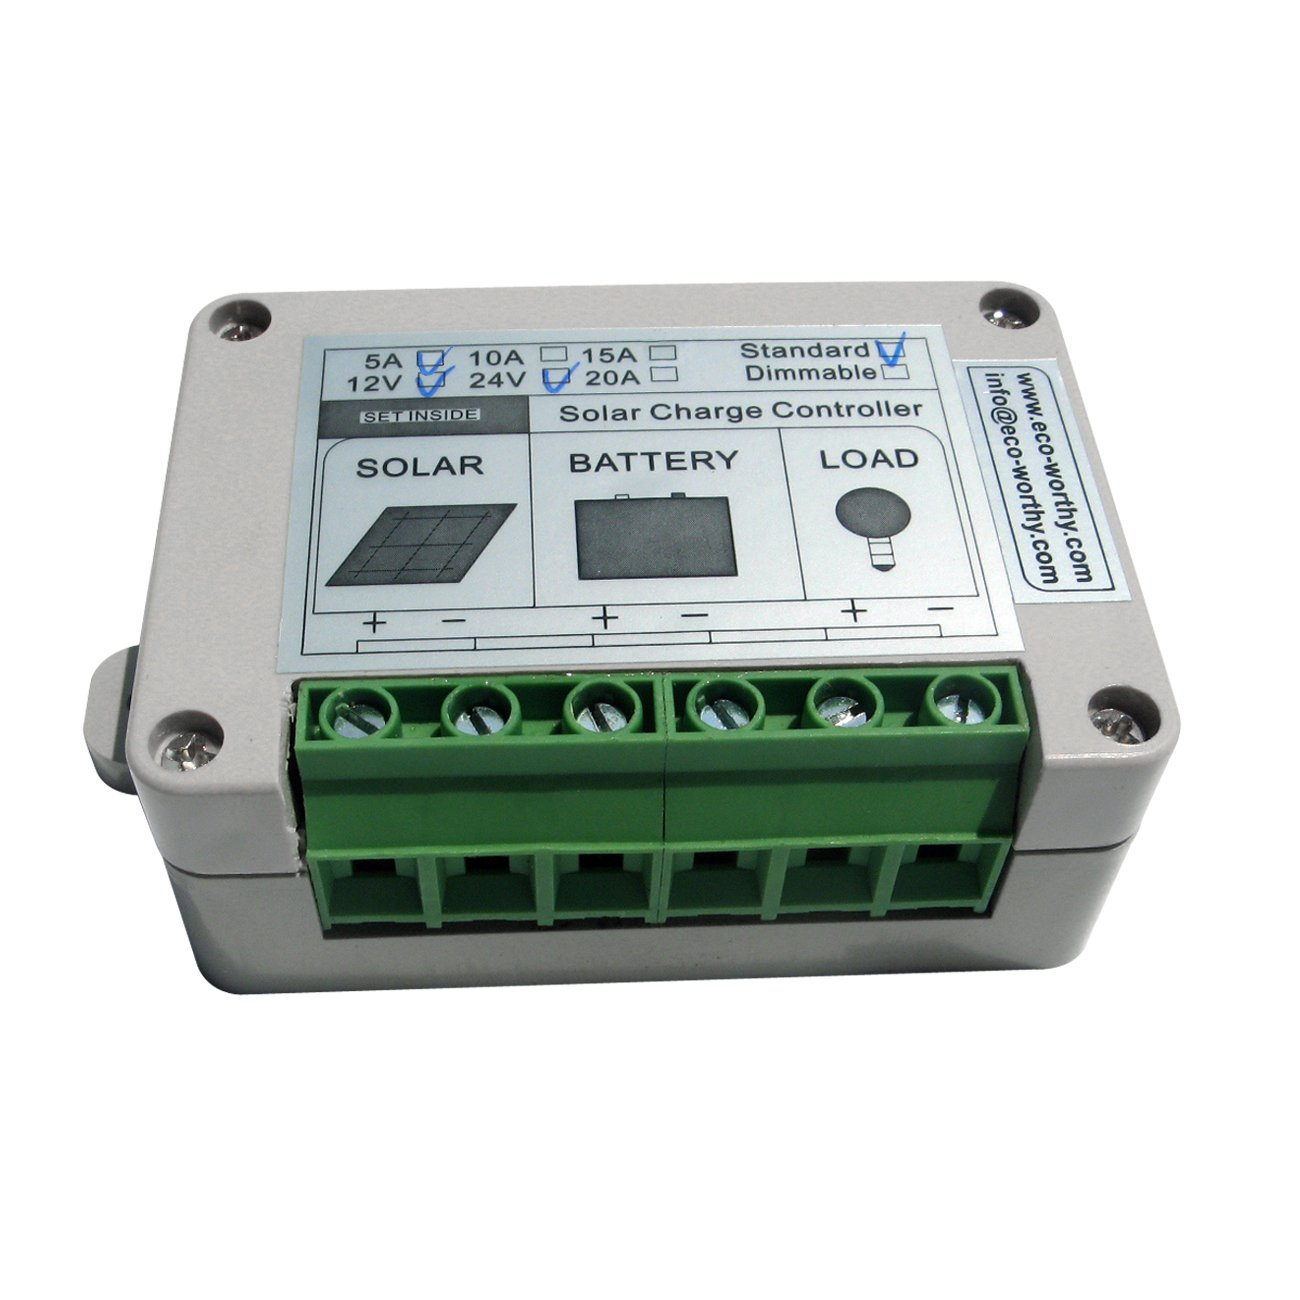 Eco Worthy 15a Pwm Solar Panel Charge Controller 12v 10a 12v24v Automatic Art Of Circuits 24v Battery Regulator Garden Outdoor